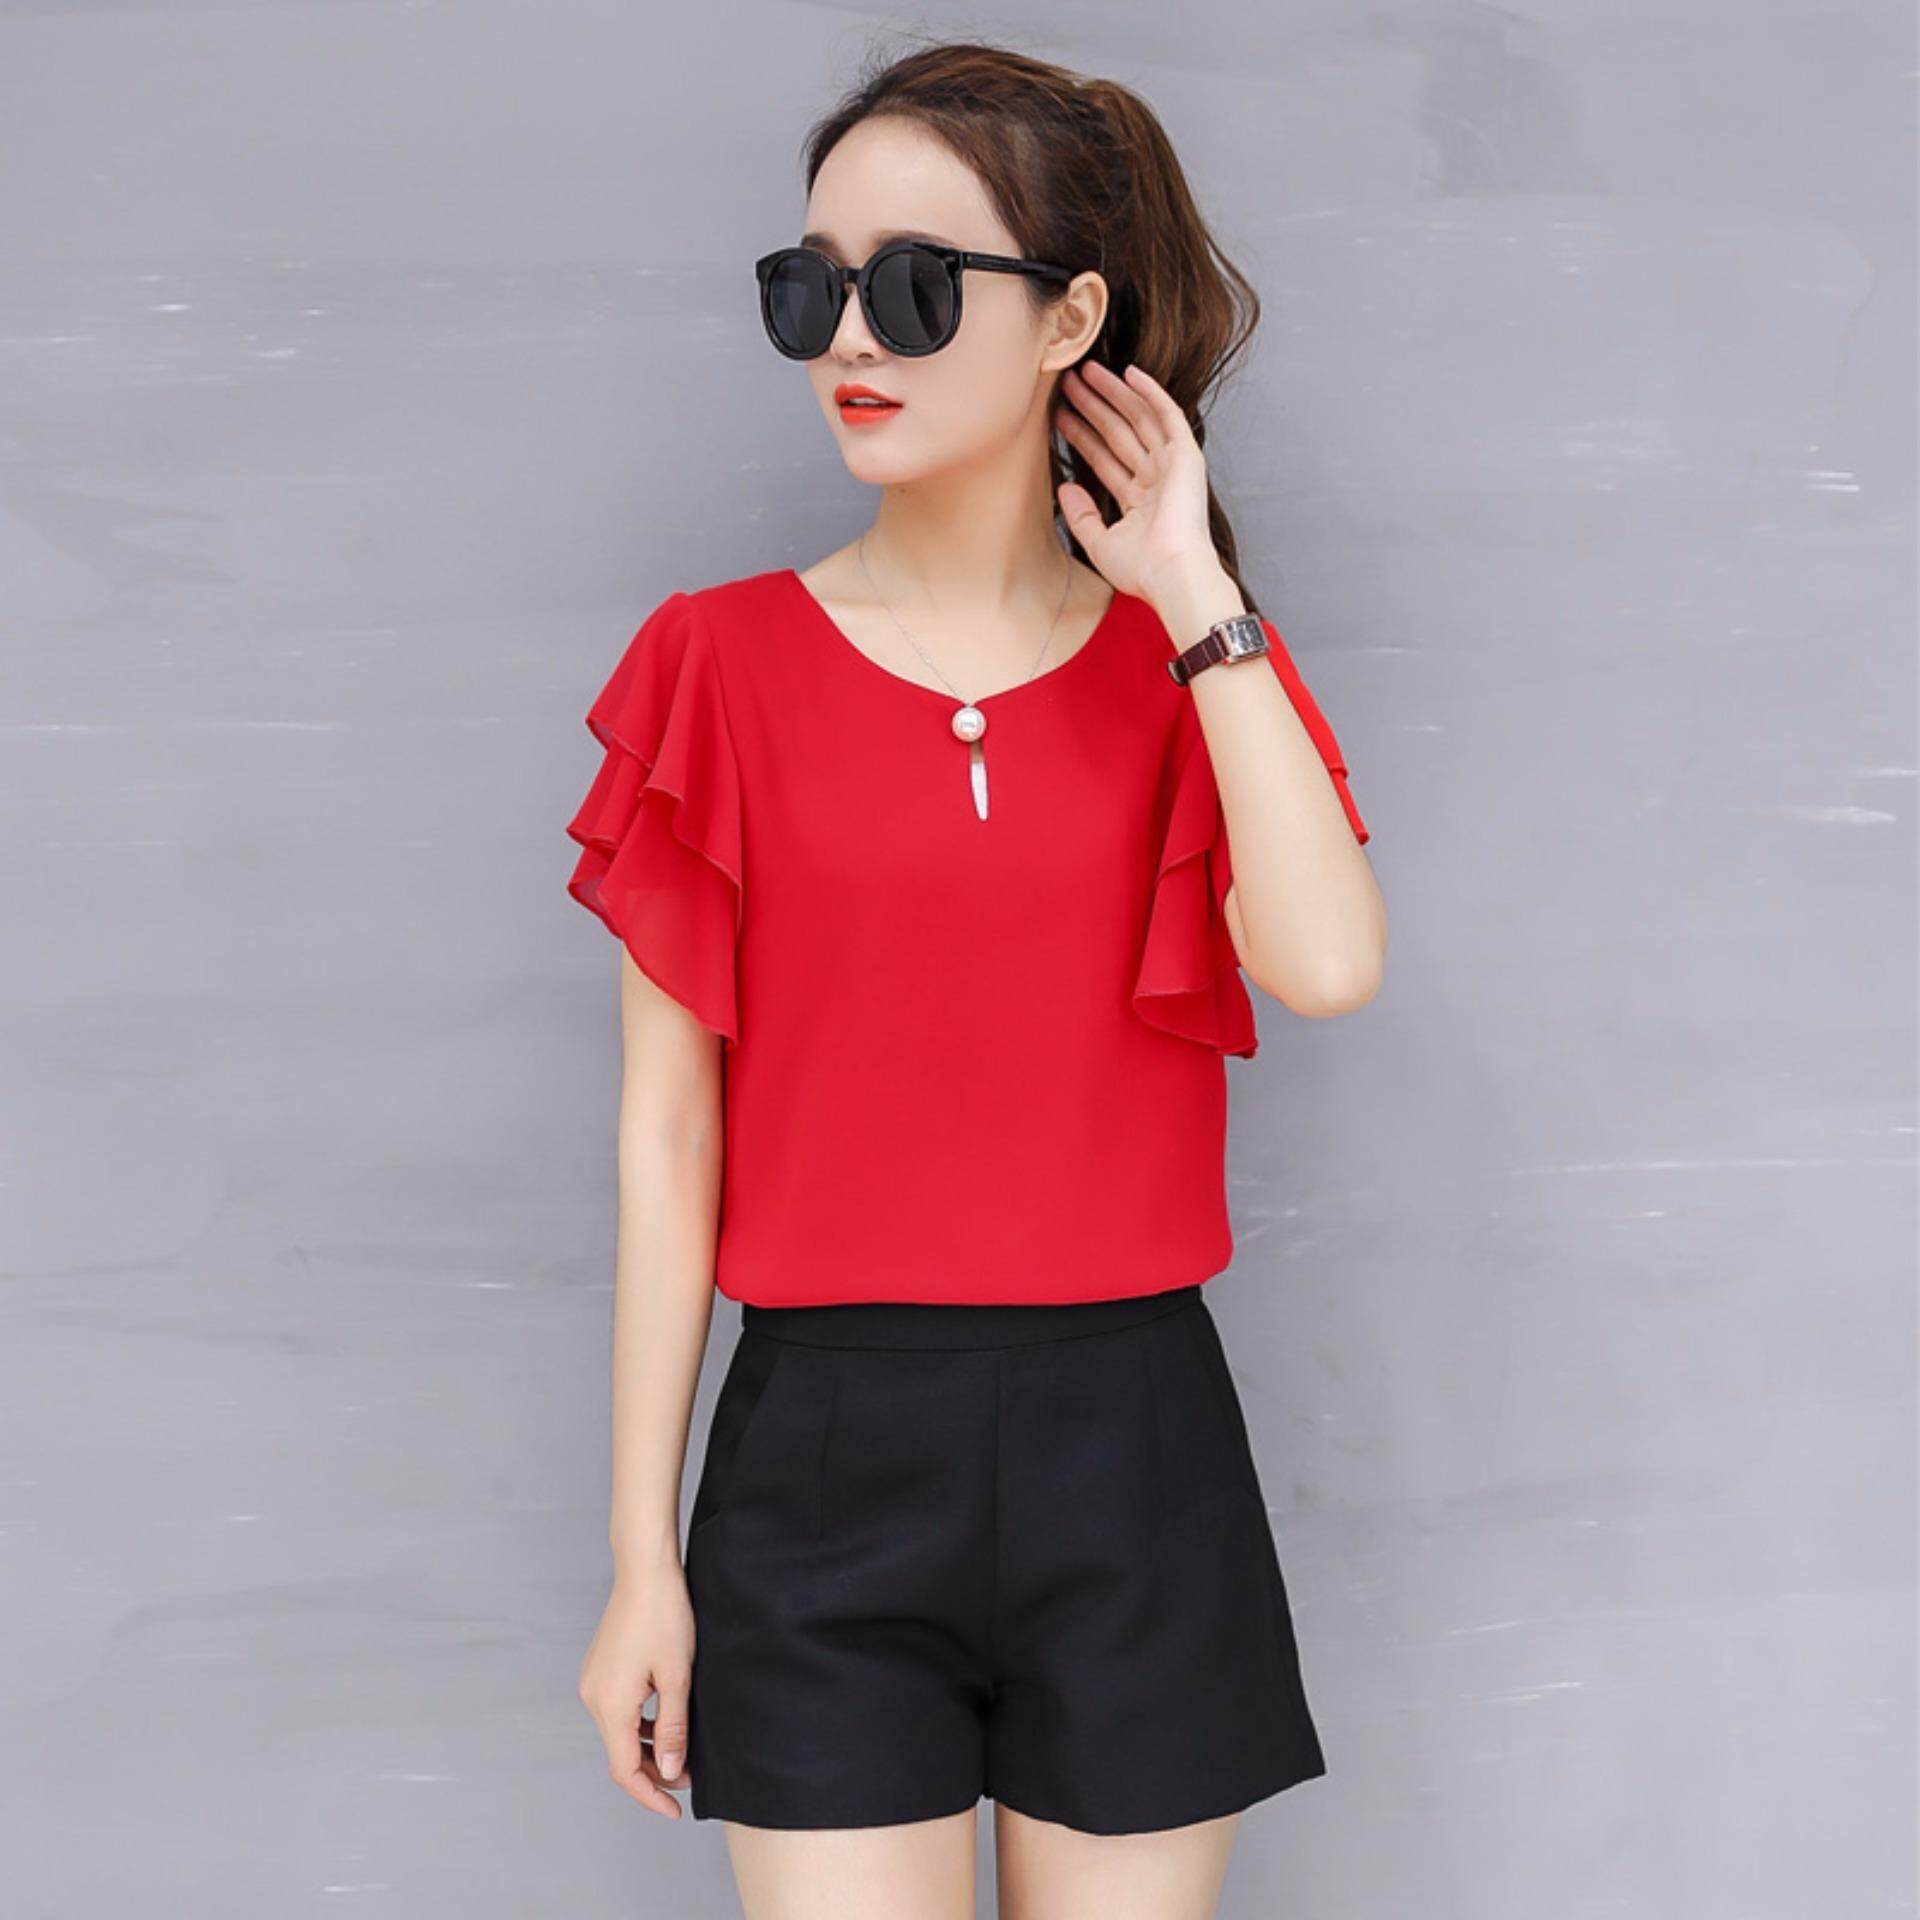 Moon Sunday Women's Plain O-Neck Short Sleeve Casual Fashion Summer Elegant Chiffon T-shirt Top & Blouse Blouse T Shirt For Women Blouse T Shirt For Women Blouse Women T Shirt Women Blouse Women Shirt  Holiday & Beach  Free Shipping เสื้อเบลาส์และเสื้อเชิ้ต